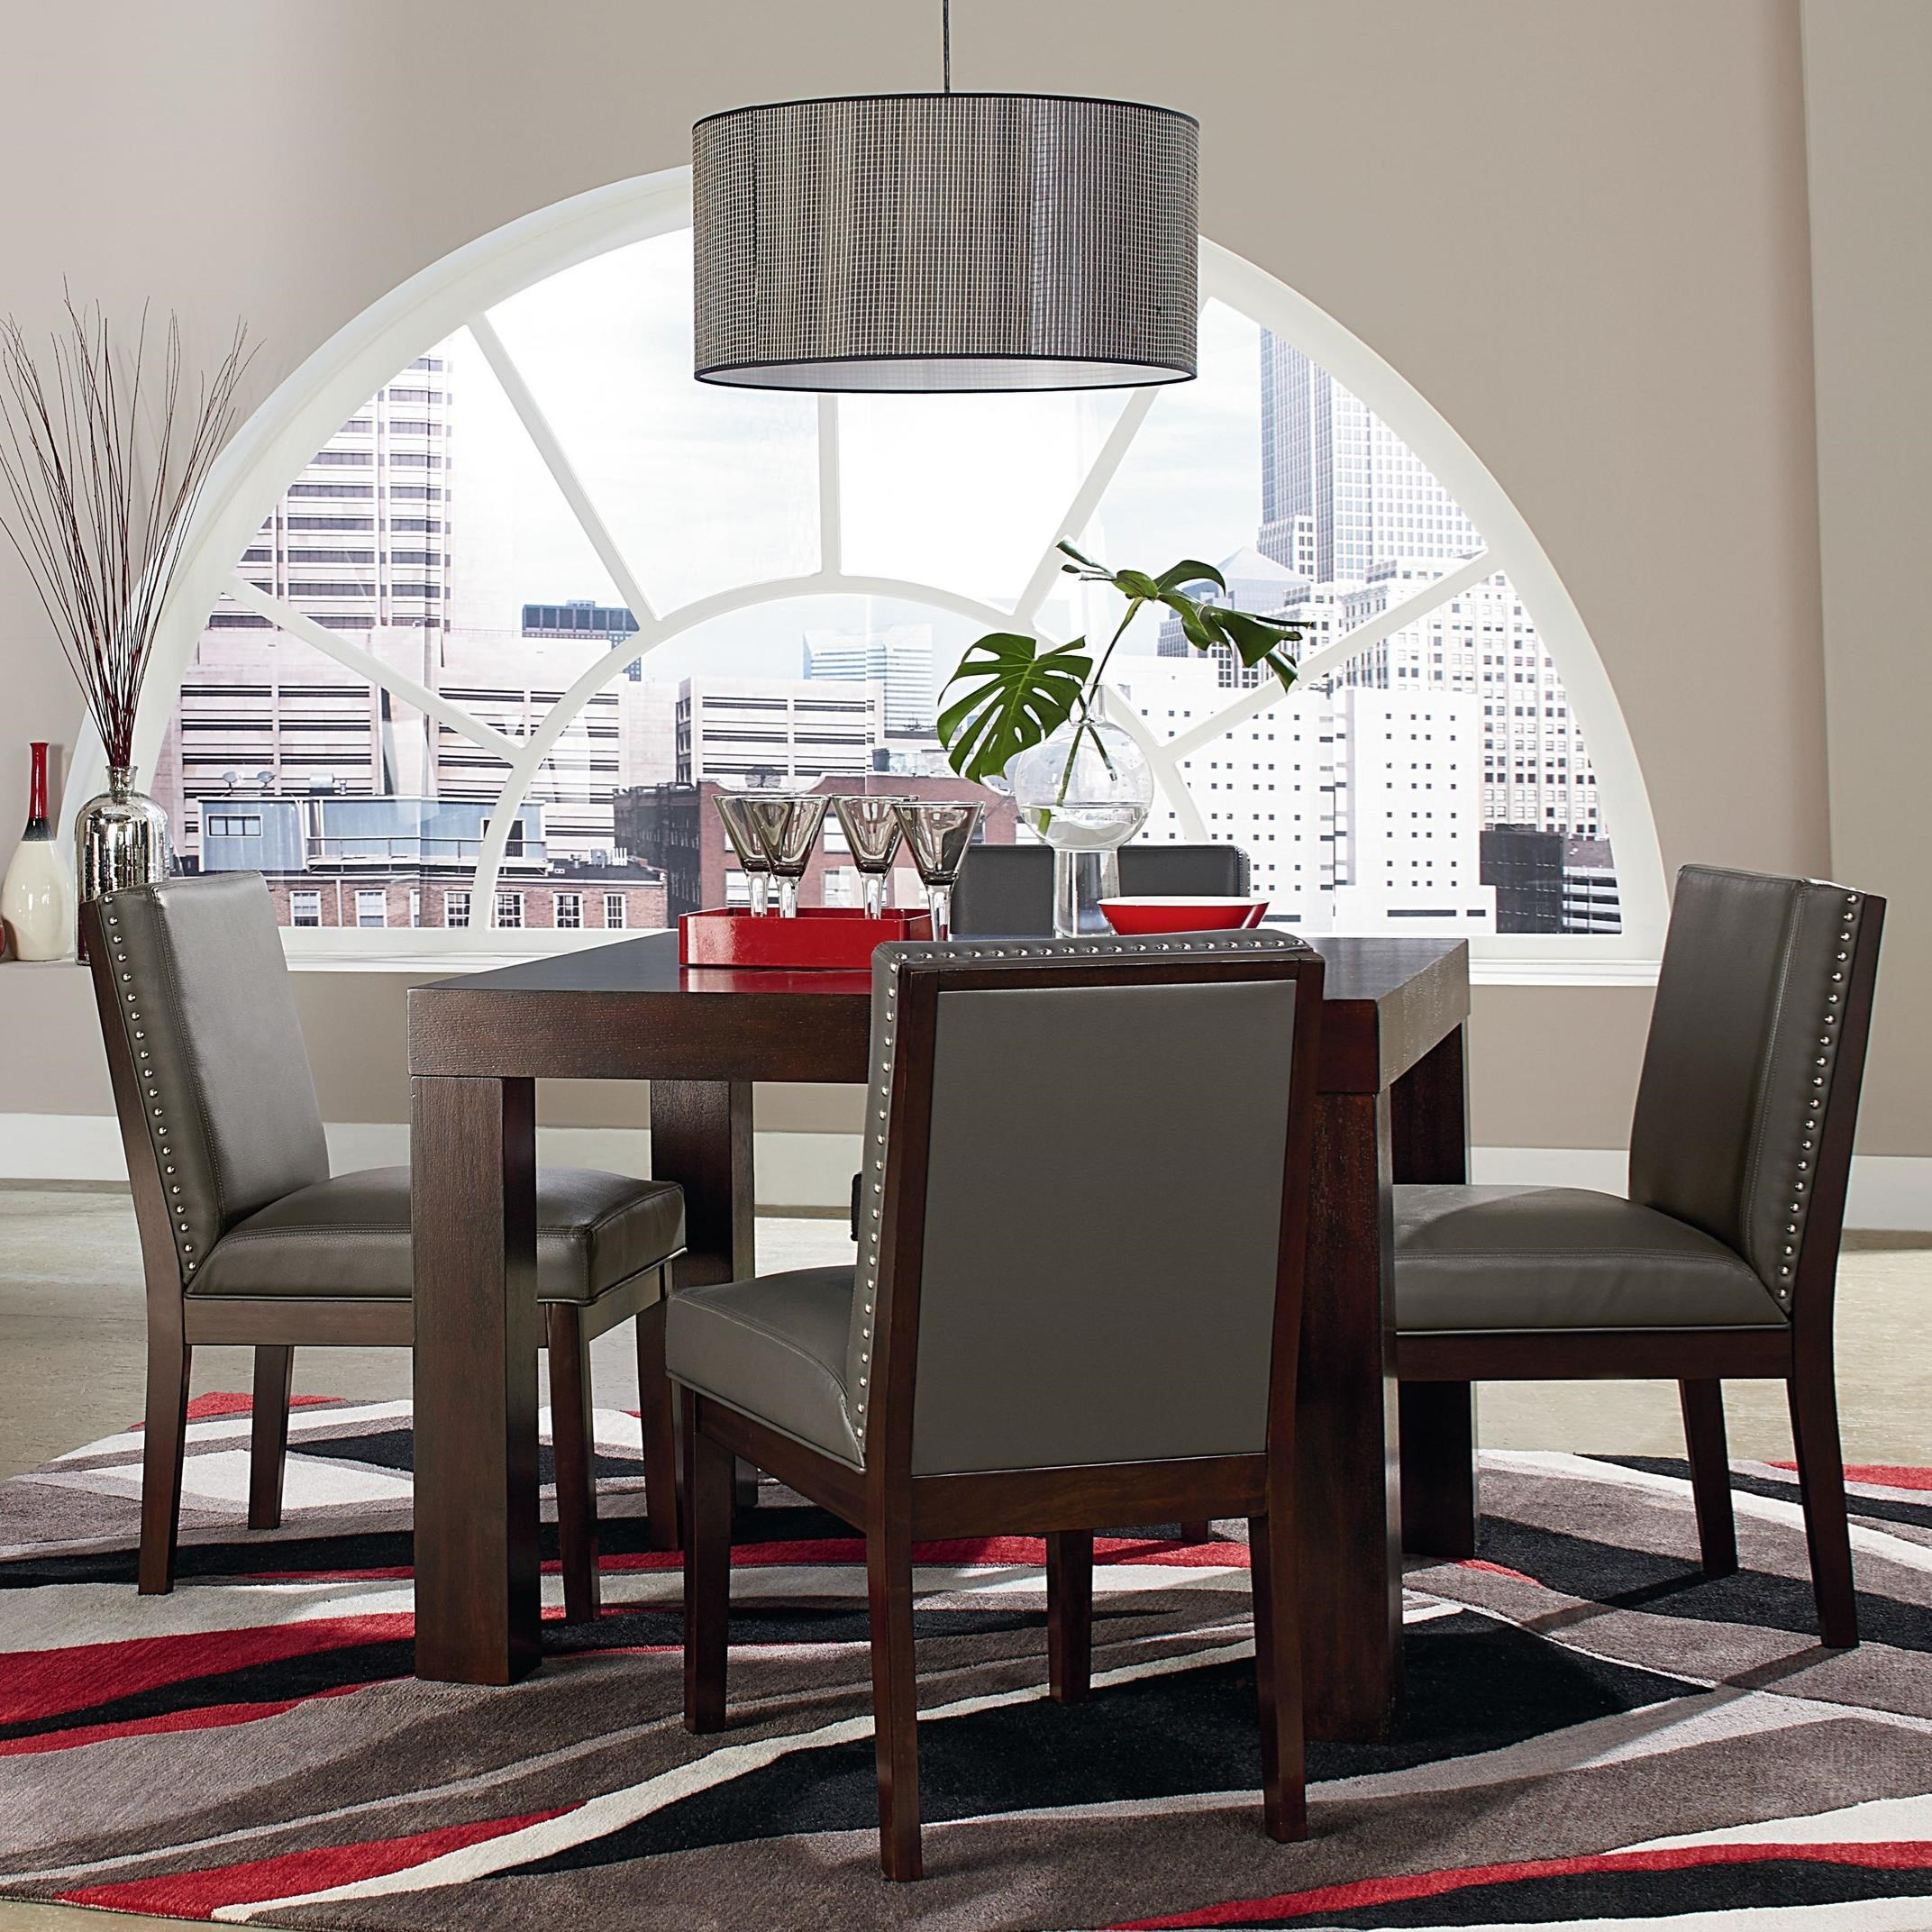 Couture Elegance Dining Table and Four Gray Chairs  / $20.99 A Week